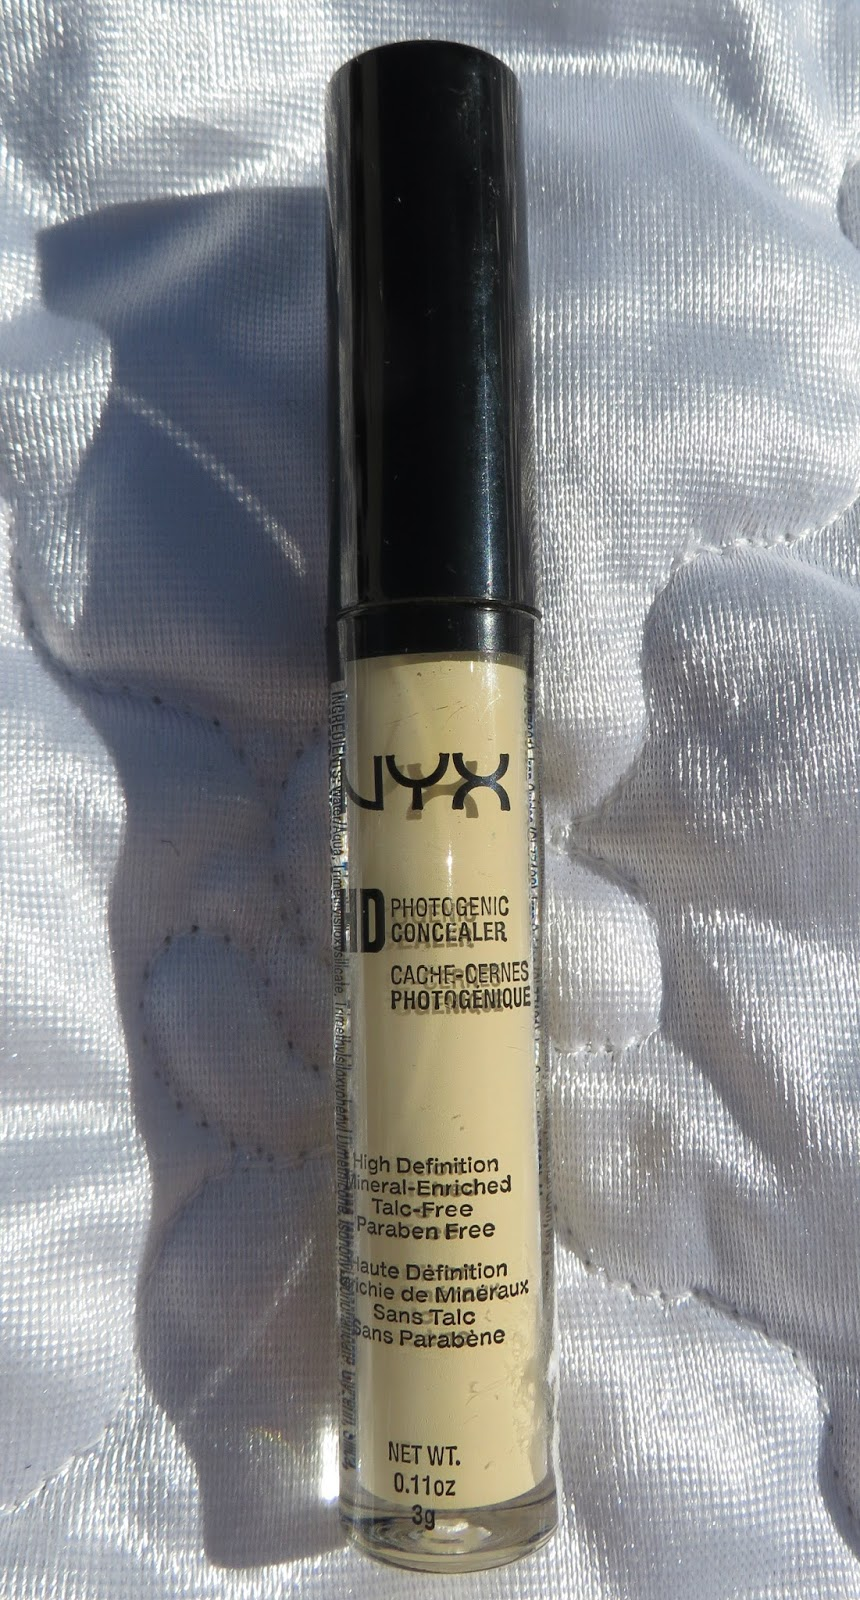 Nina 39 s bargain beauty nyx hd concealer wand review - Nyx concealer wand yellow ...